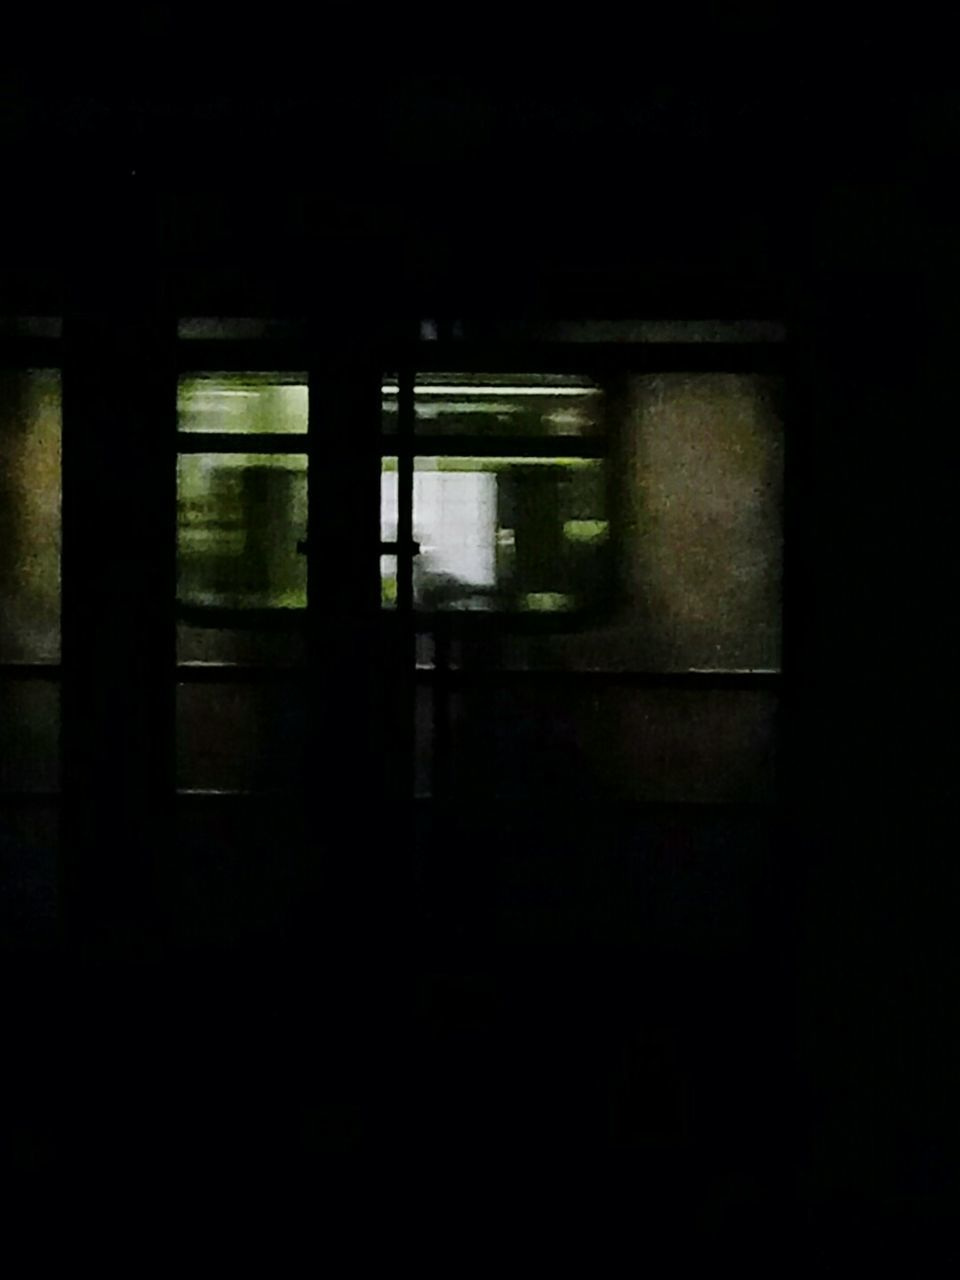 dark, indoors, window, no people, architecture, day